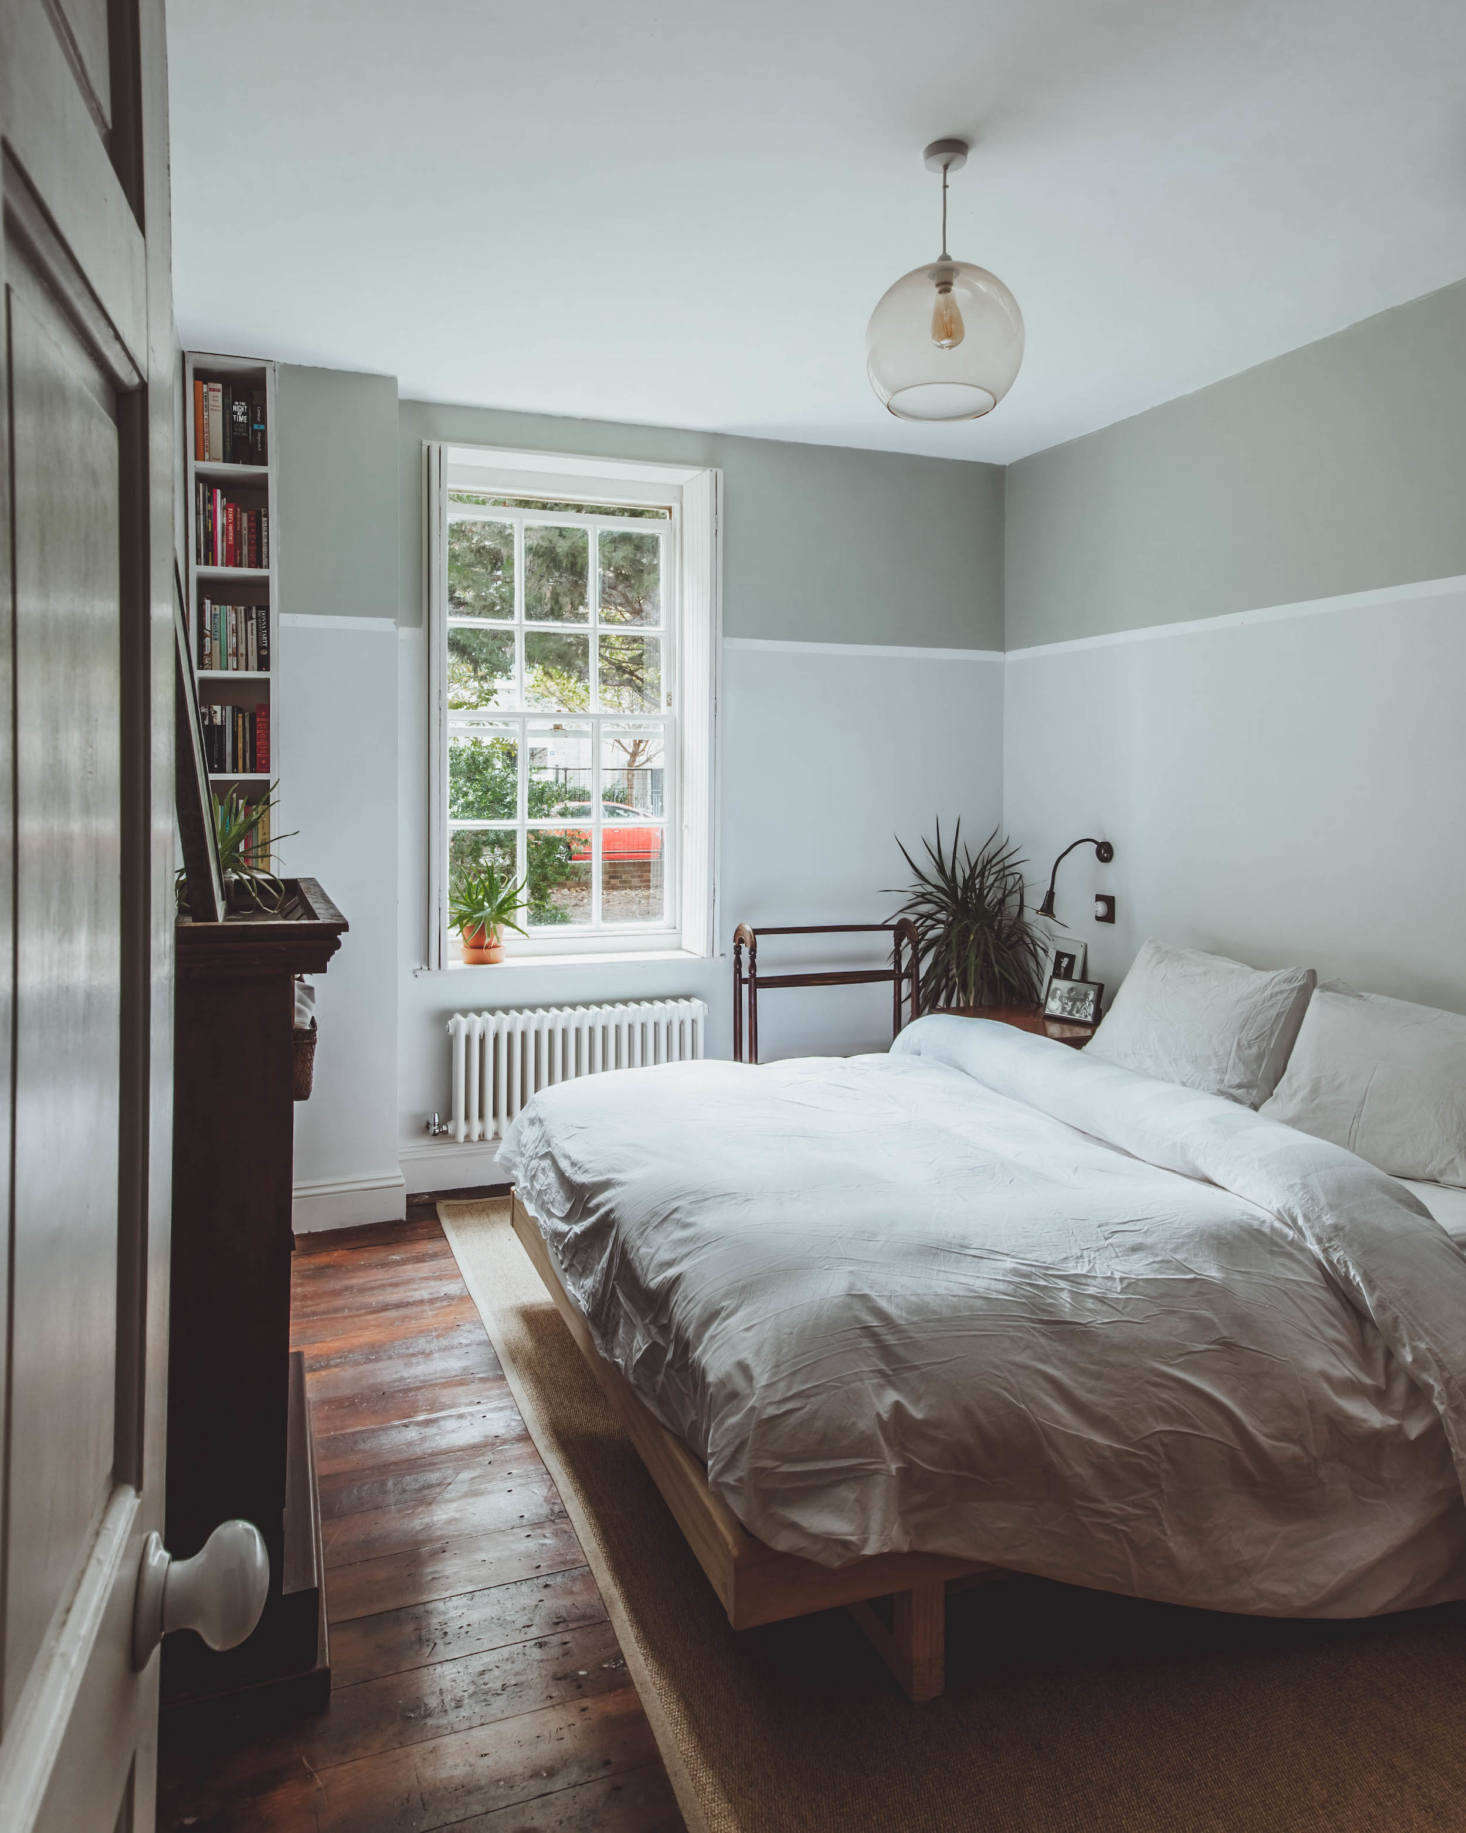 In the bedroom, dark-stained floors and a simply made bed.